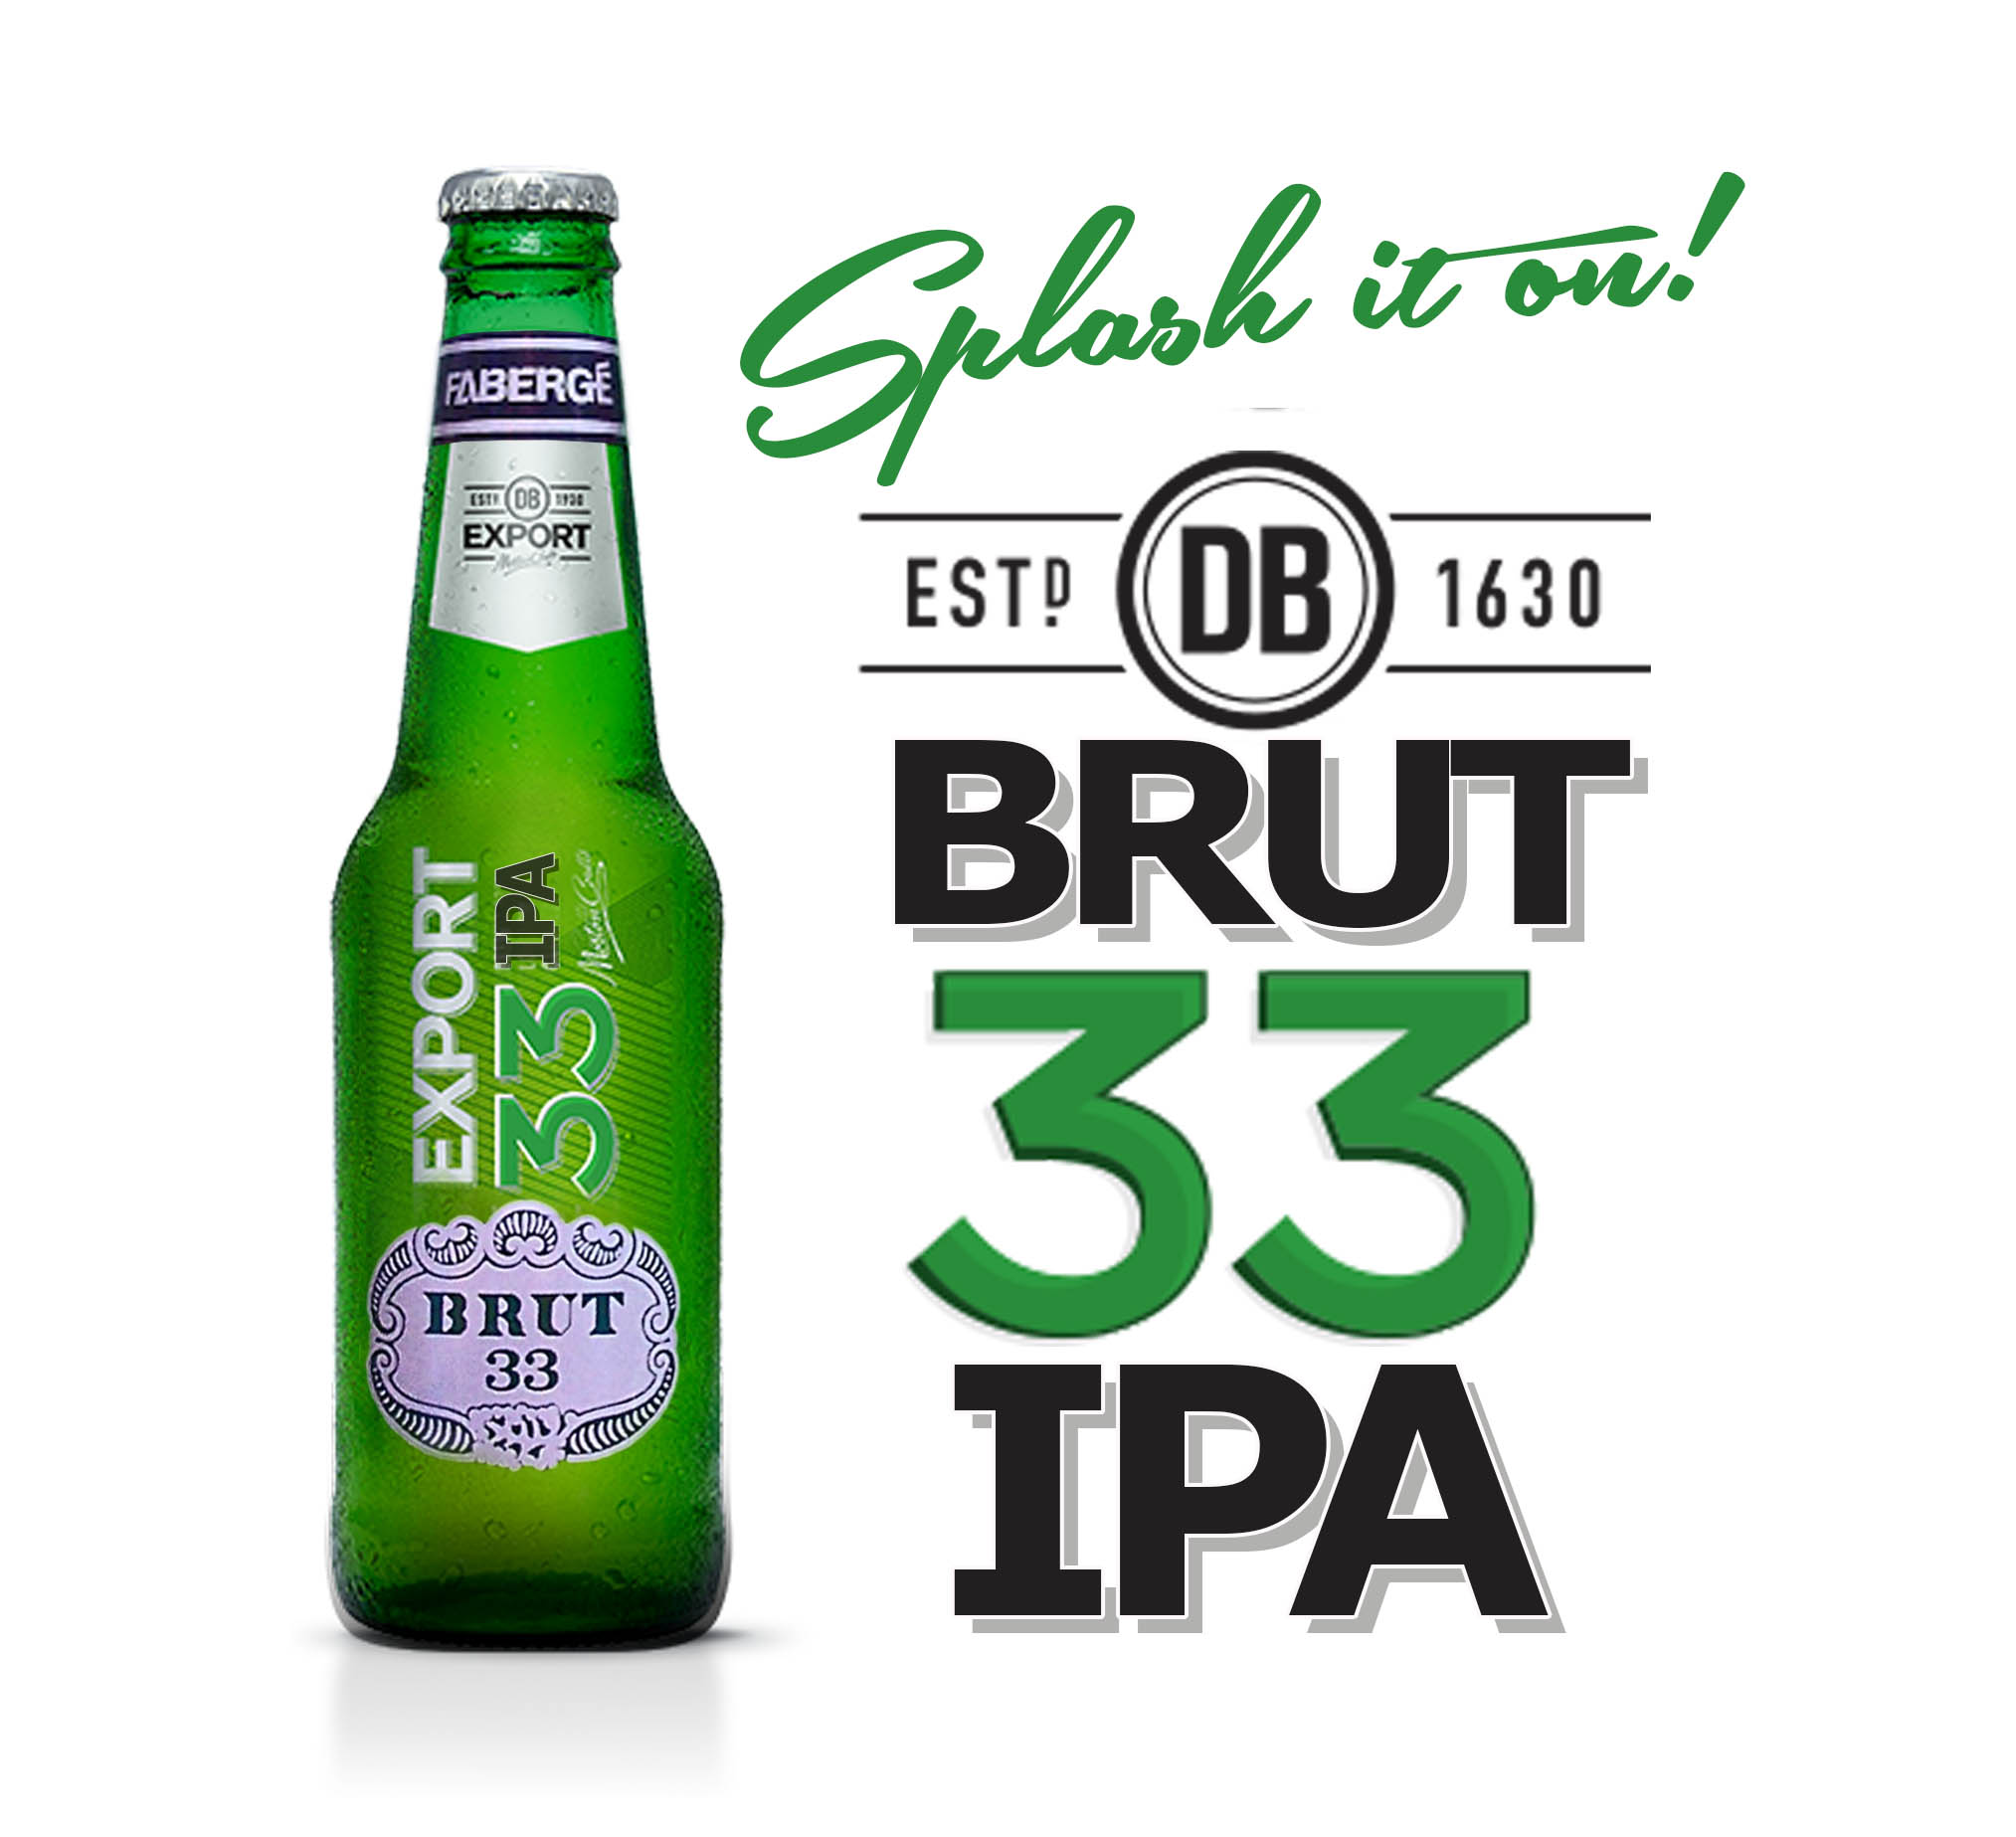 The Beerkake is here, DB's new hybrid lager hits the market.